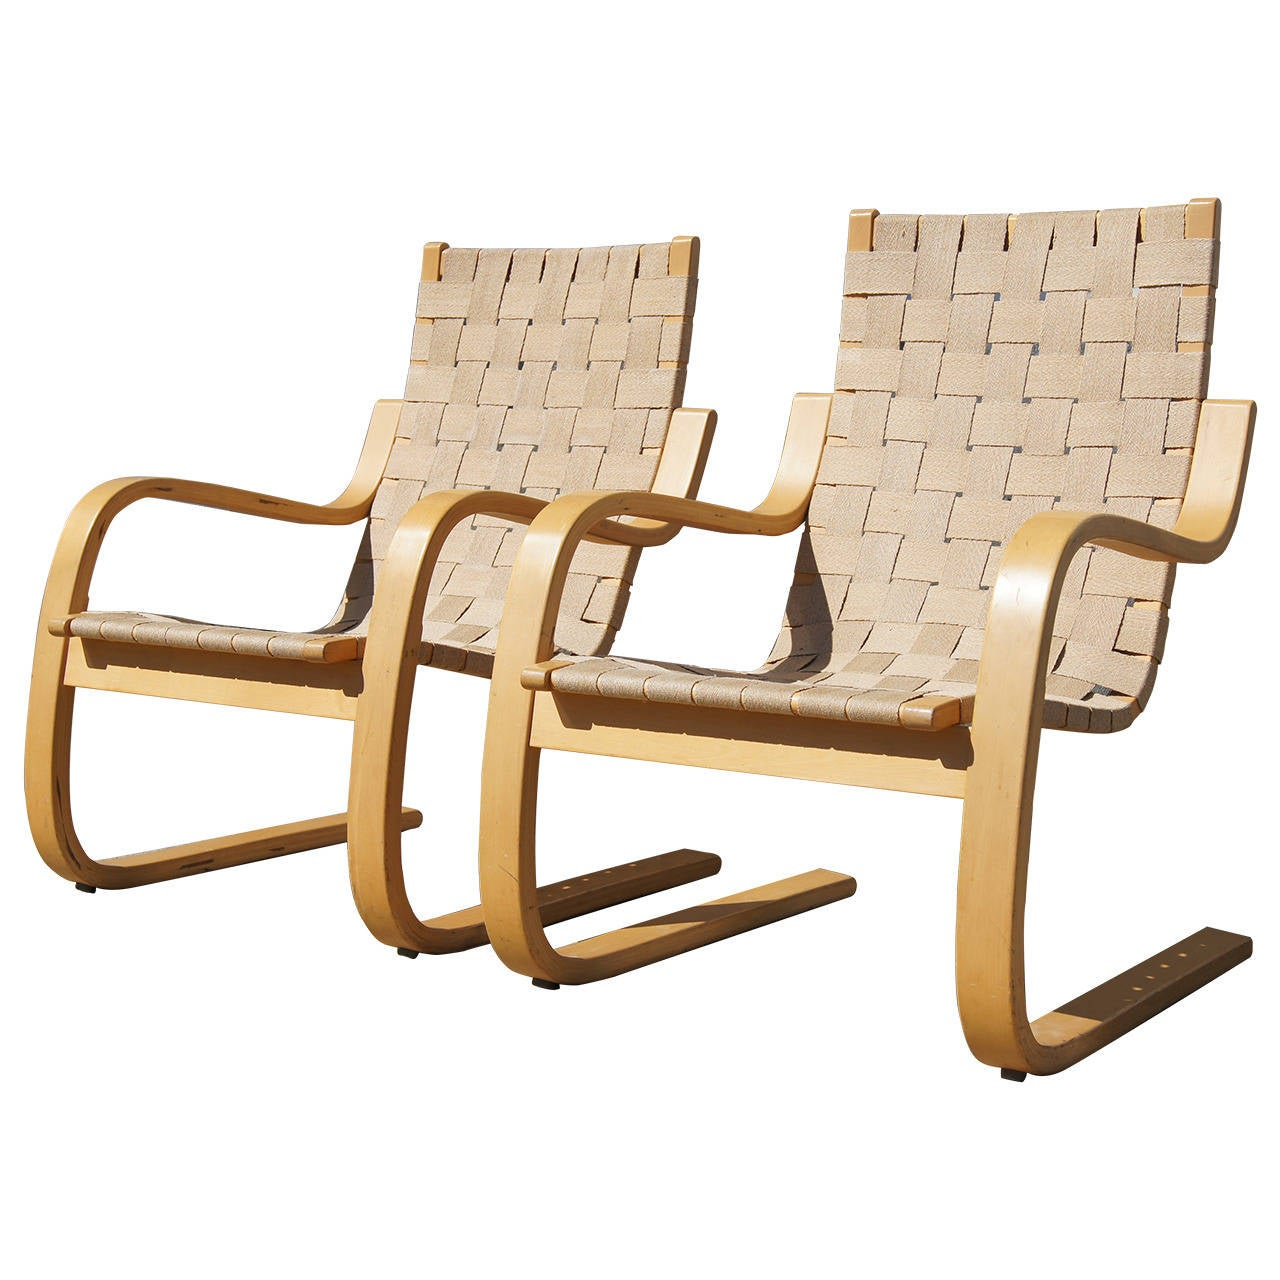 alvar aalto furniture. Pair Of Lounge Chairs #406 By Alvar Aalto For Artek Sale Furniture L